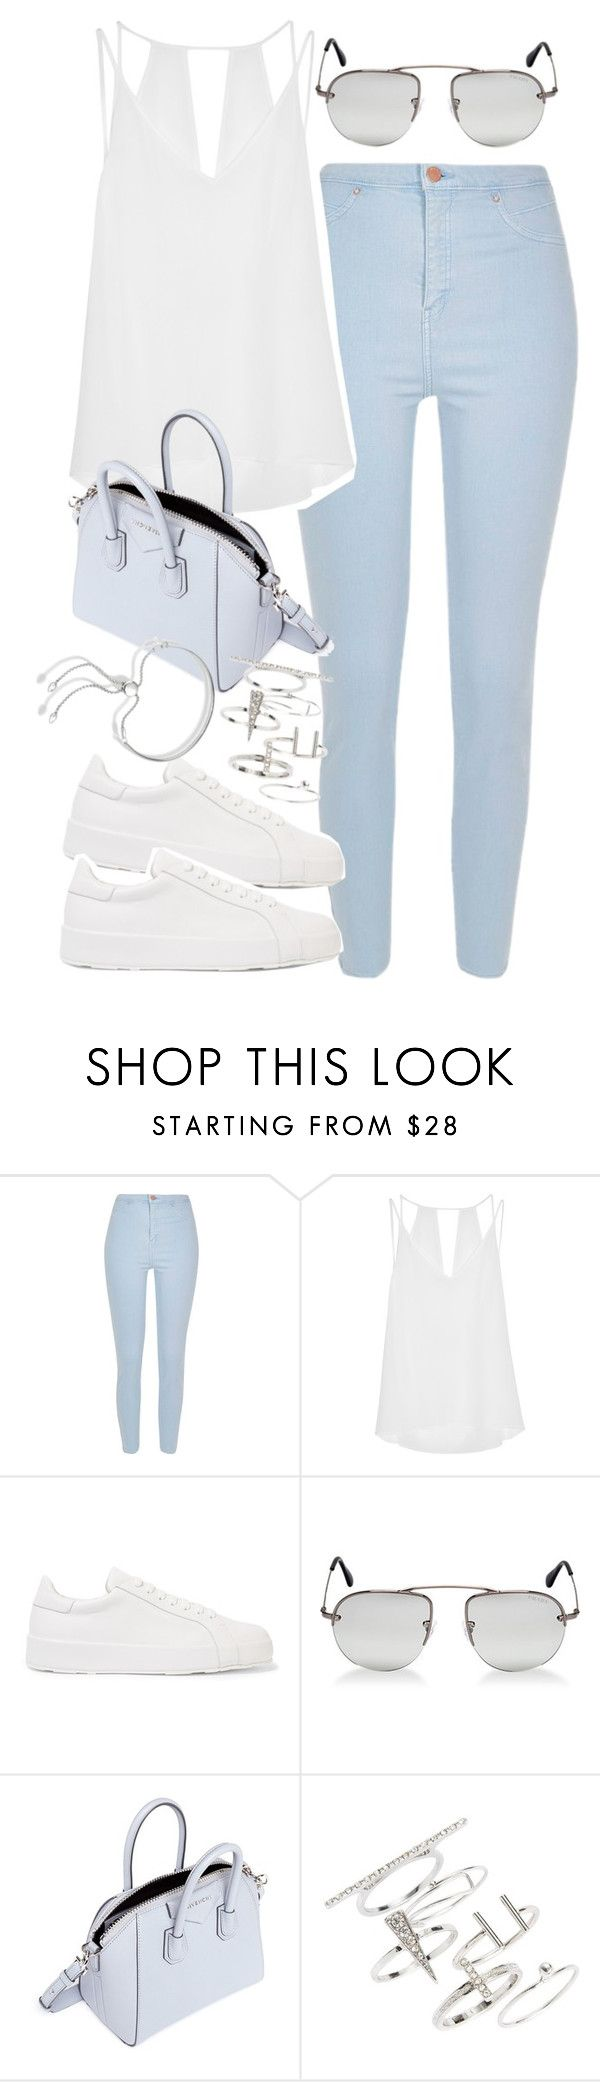 """Outfit with light blue jeans"" by ferned ❤ liked on Polyvore featuring River Island, Sandro, Jil Sander, Prada, Givenchy, Topshop and Monica Vinader"